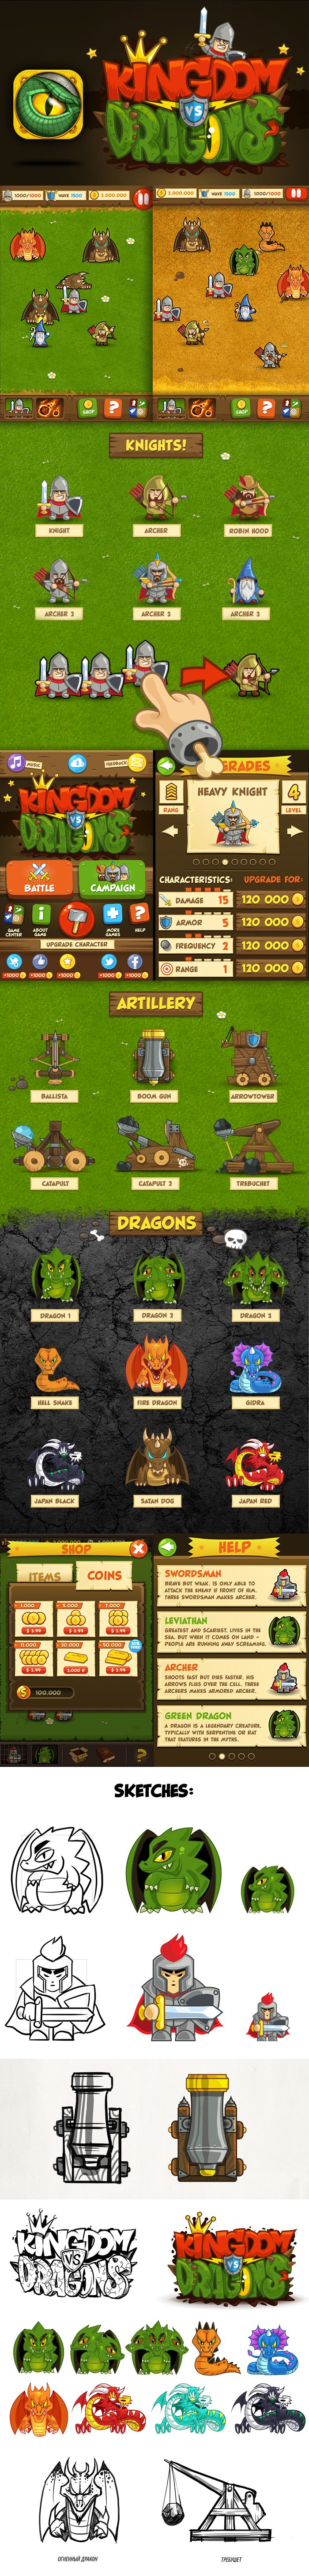 Kingdom vs. Dragons | Create your own roleplaying game books w/ RPG Bard: www.rpgbard.com | Pathfinder PFRPG Dungeons and Dragons ADND DND OGL d20 OSR OSRIC Warhammer 40000 40k Fantasy Roleplay WFRP Star Wars Exalted World of Darkness Dragon Age Iron Kingdoms Fate Core System Savage Worlds Shadowrun Dungeon Crawl Classics DCC Call of Cthulhu CoC Basic Role Playing BRP Traveller Battletech The One Ring TOR fantasy science fiction horror